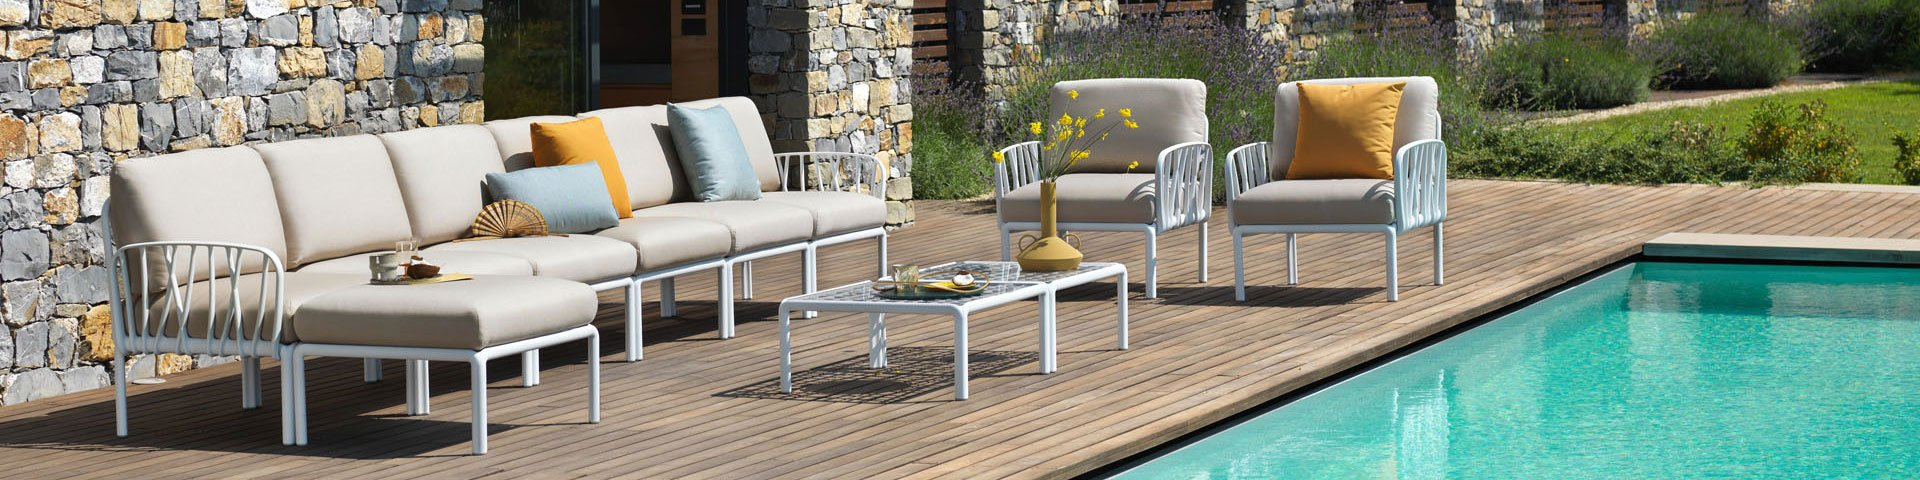 Outdoor Furniture at Abode Furniture